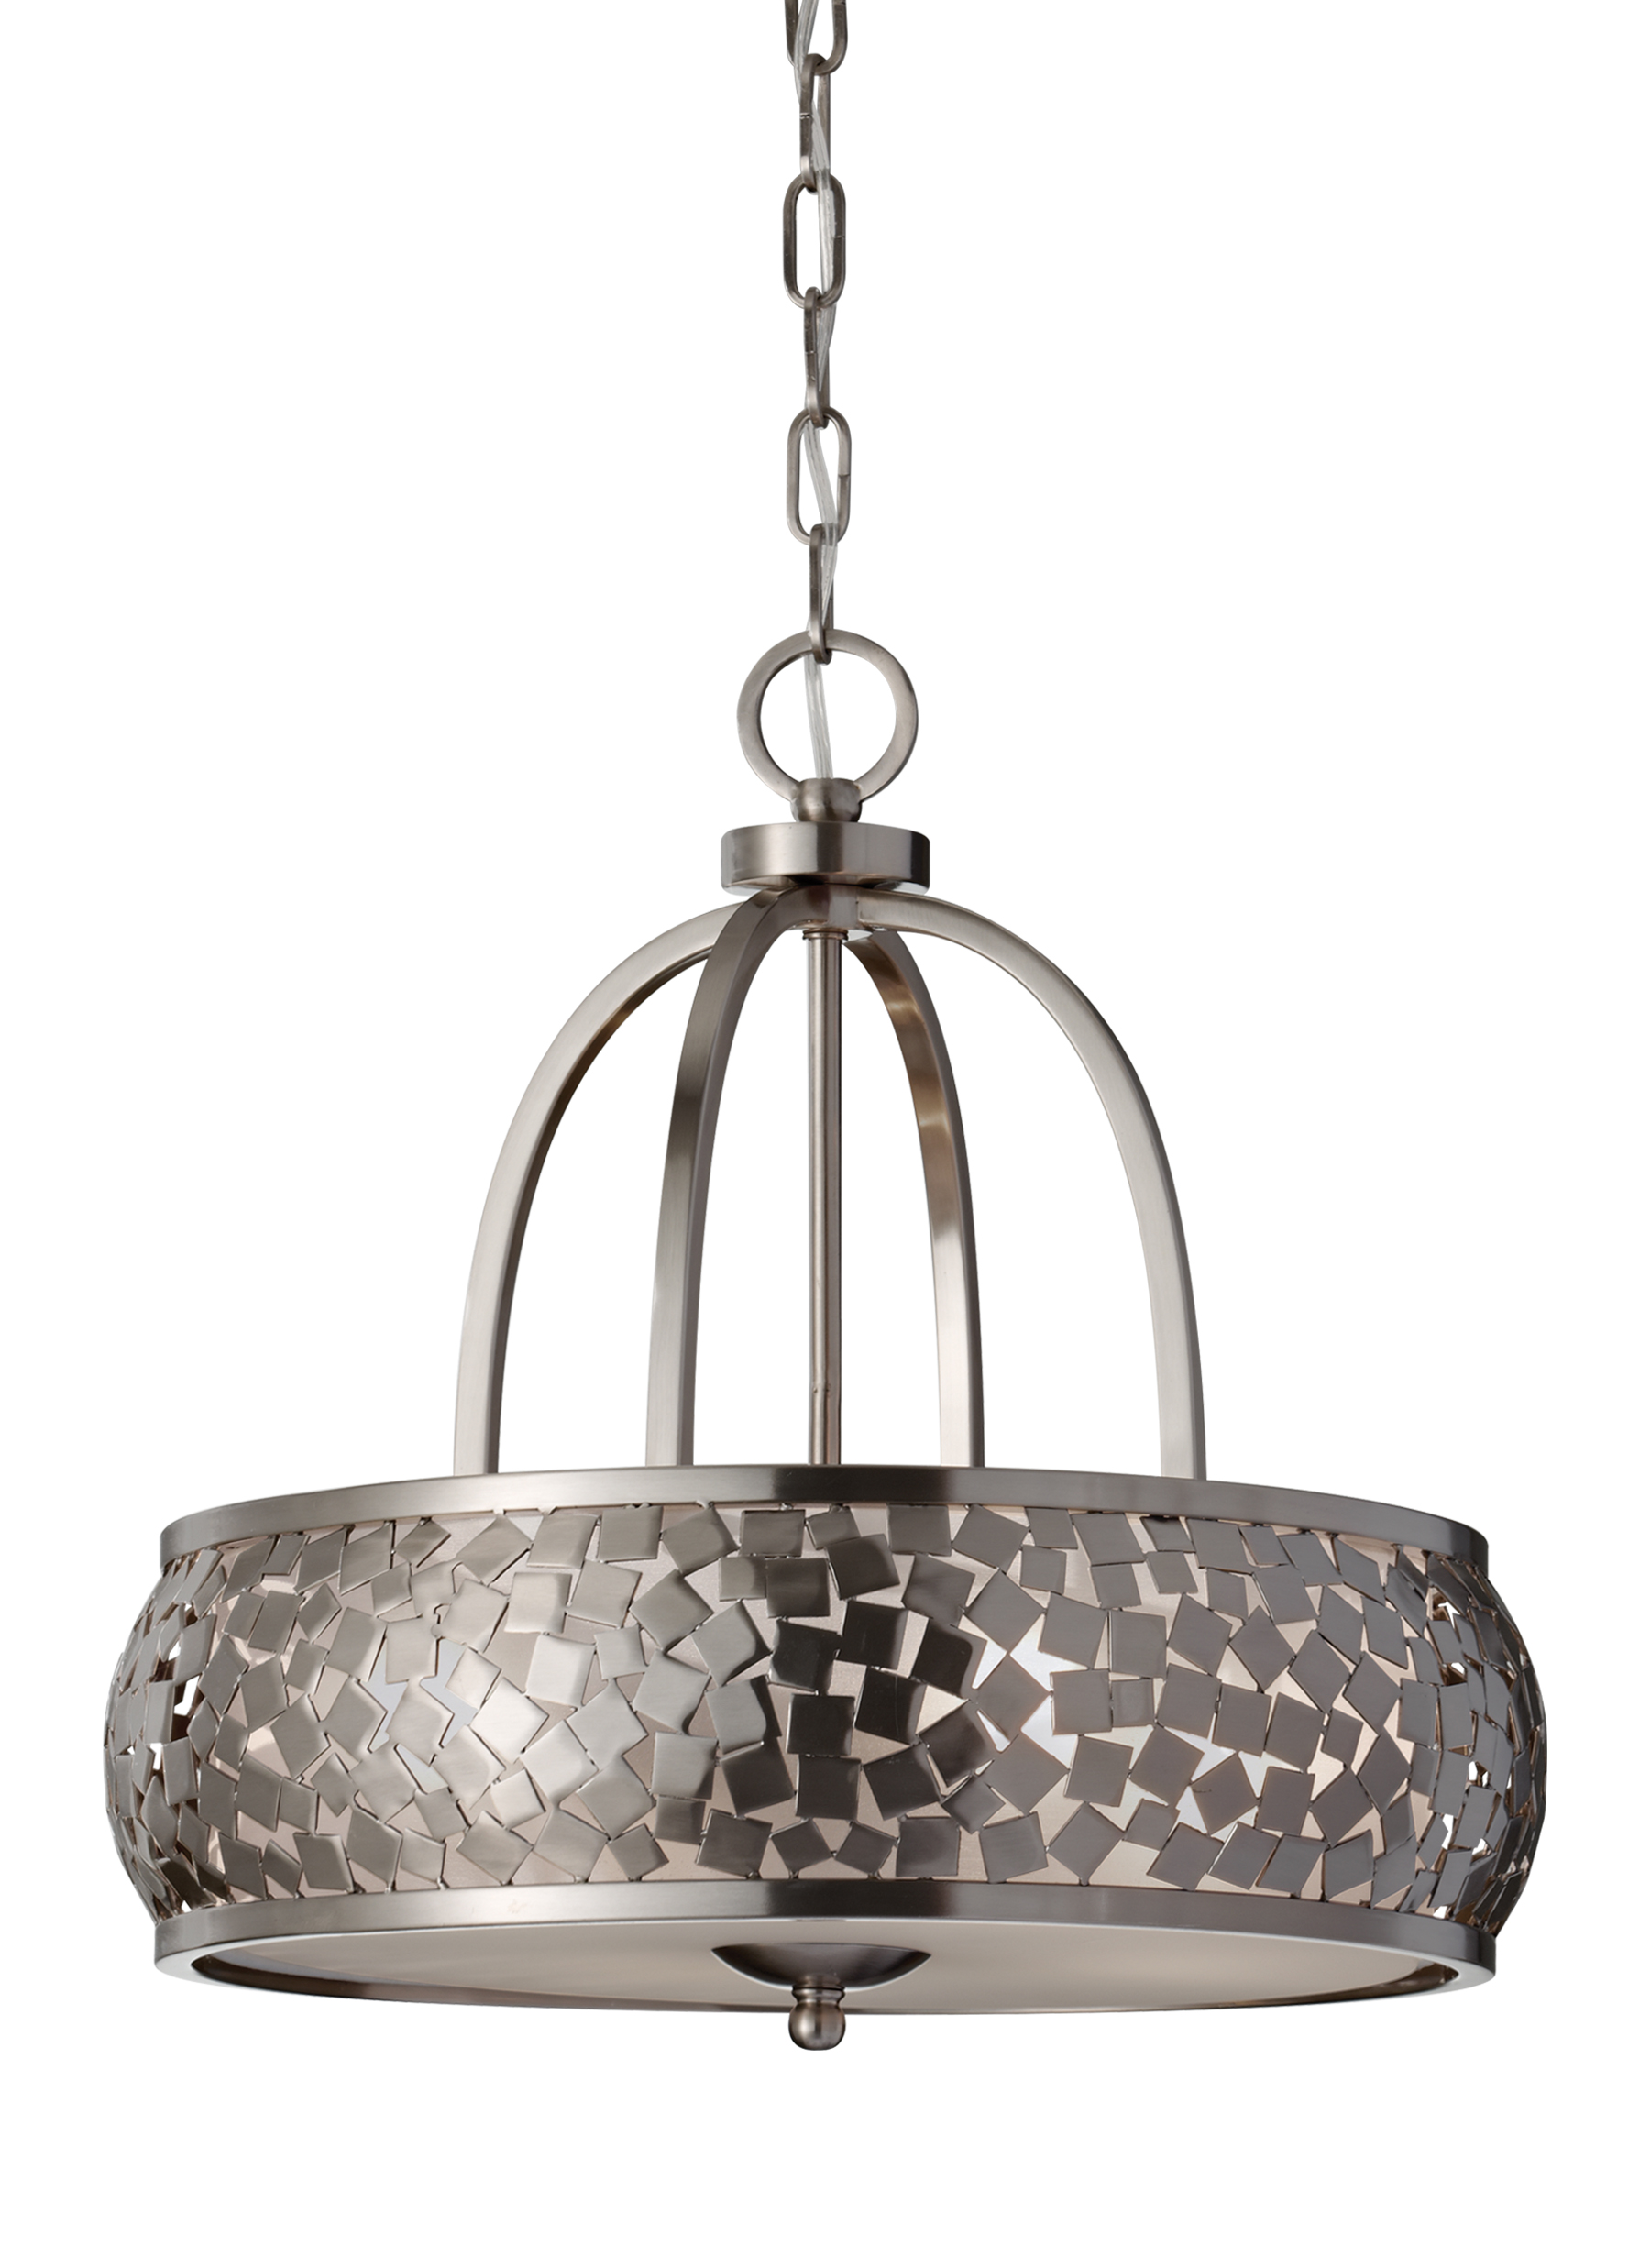 FBSLight Chandelier Brushed Steel - Brushed steel kitchen ceiling lights